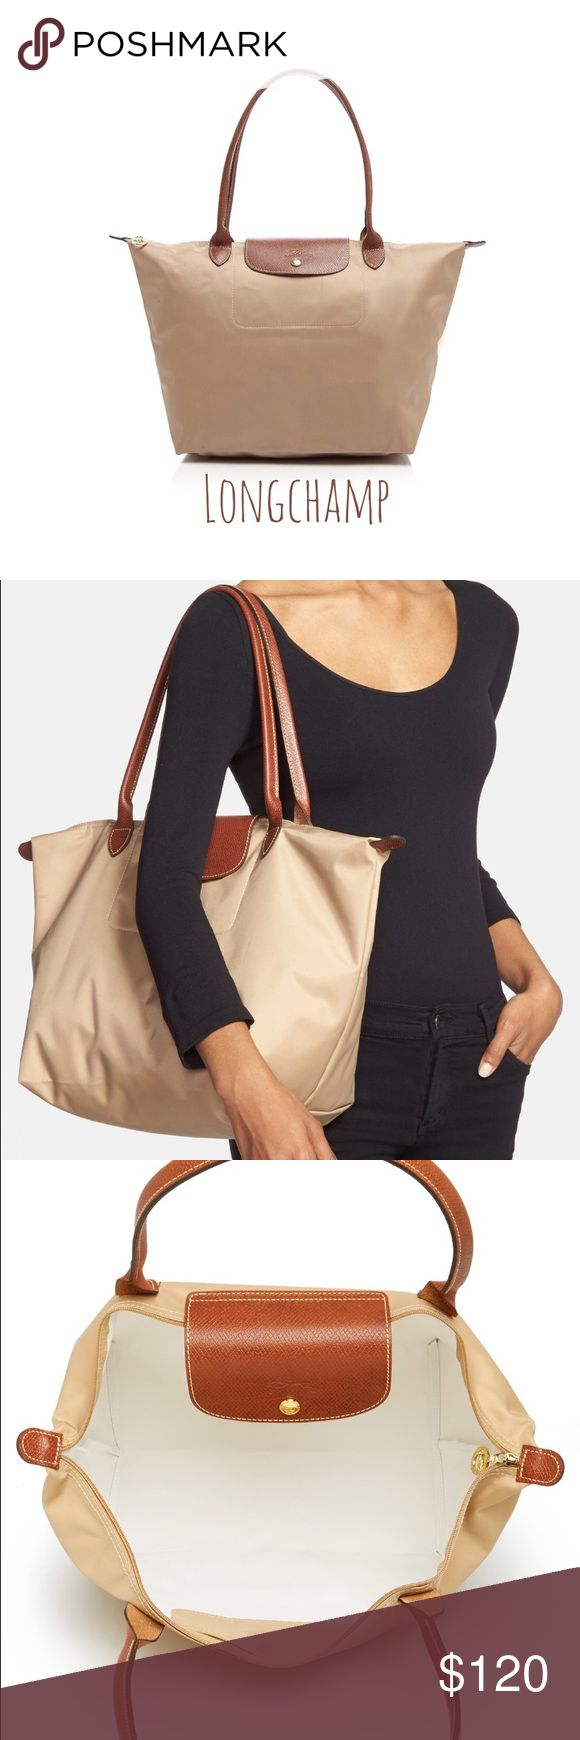 Longchamp Le Pliage nylon tote bag shoulder handle Brand new 100% authentic. dimension: 12 1/4x11 3/4x7 1/2 inches. Comes with Longchamp paper bag. Will provide a copy of gift receipt upon request. Longchamp Bags